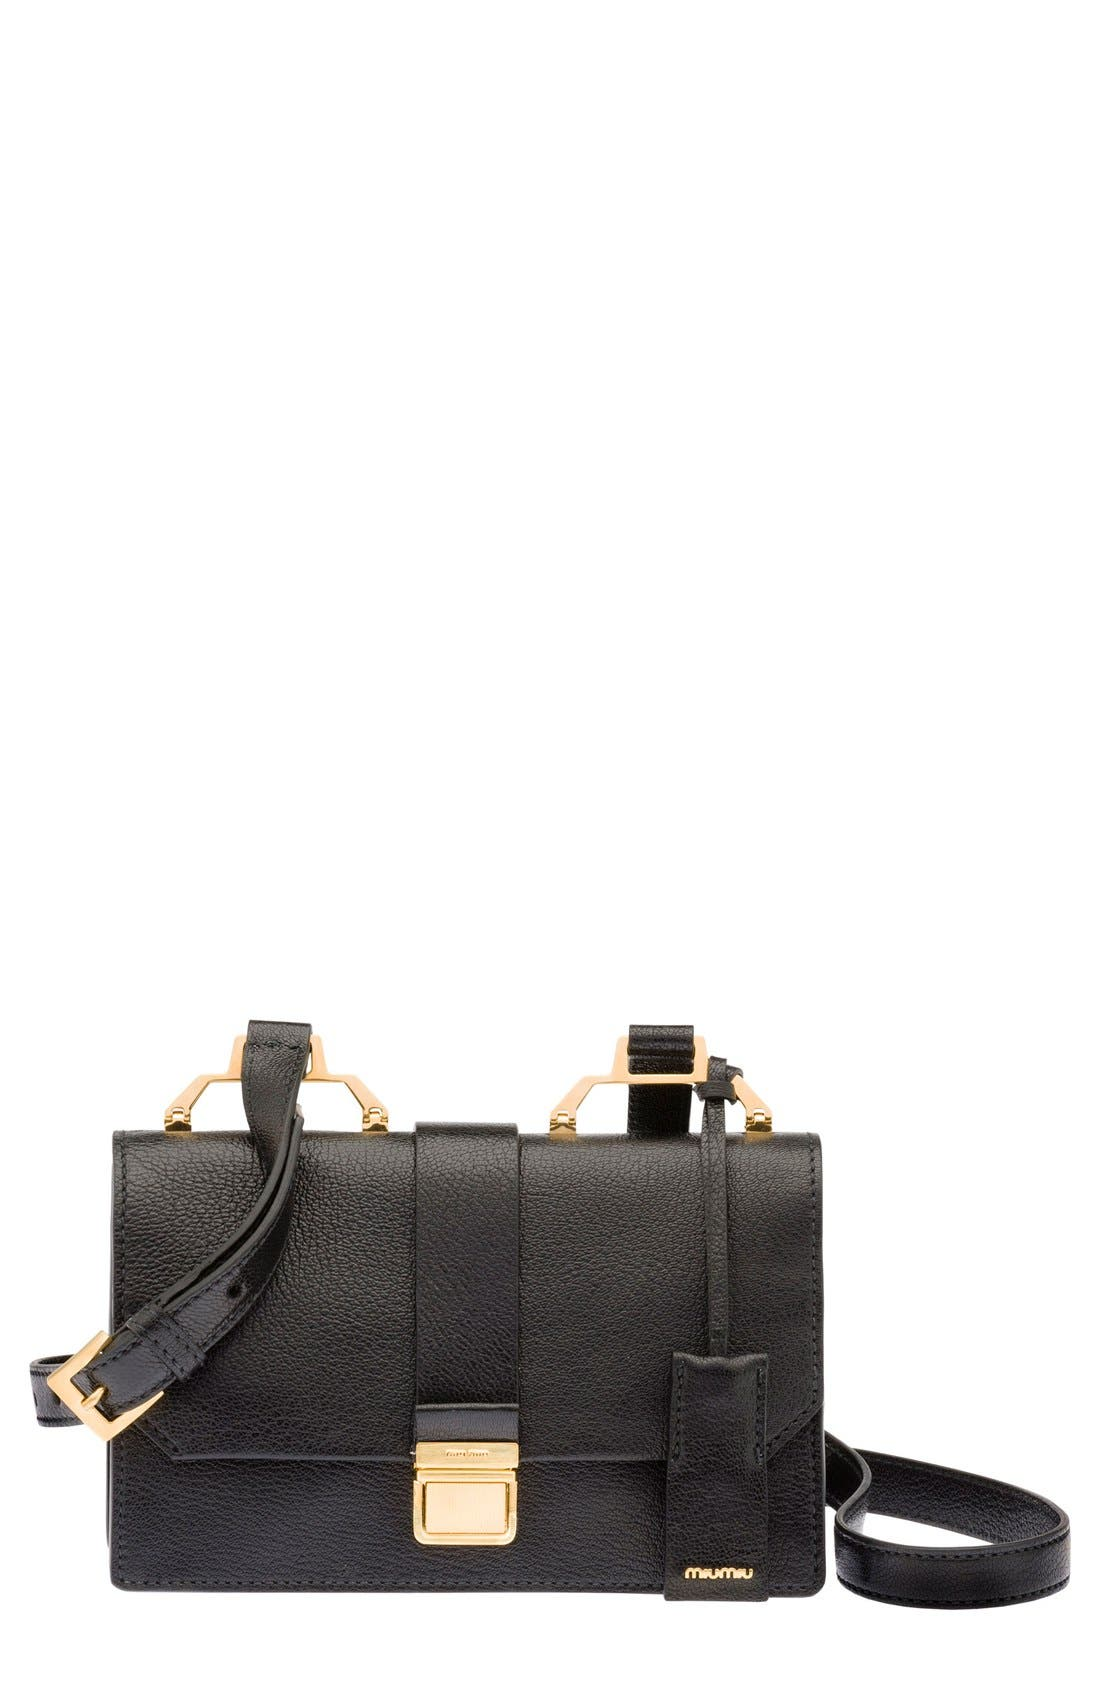 MIU MIU 'Small Madras' Goatskin Leather Shoulder Bag